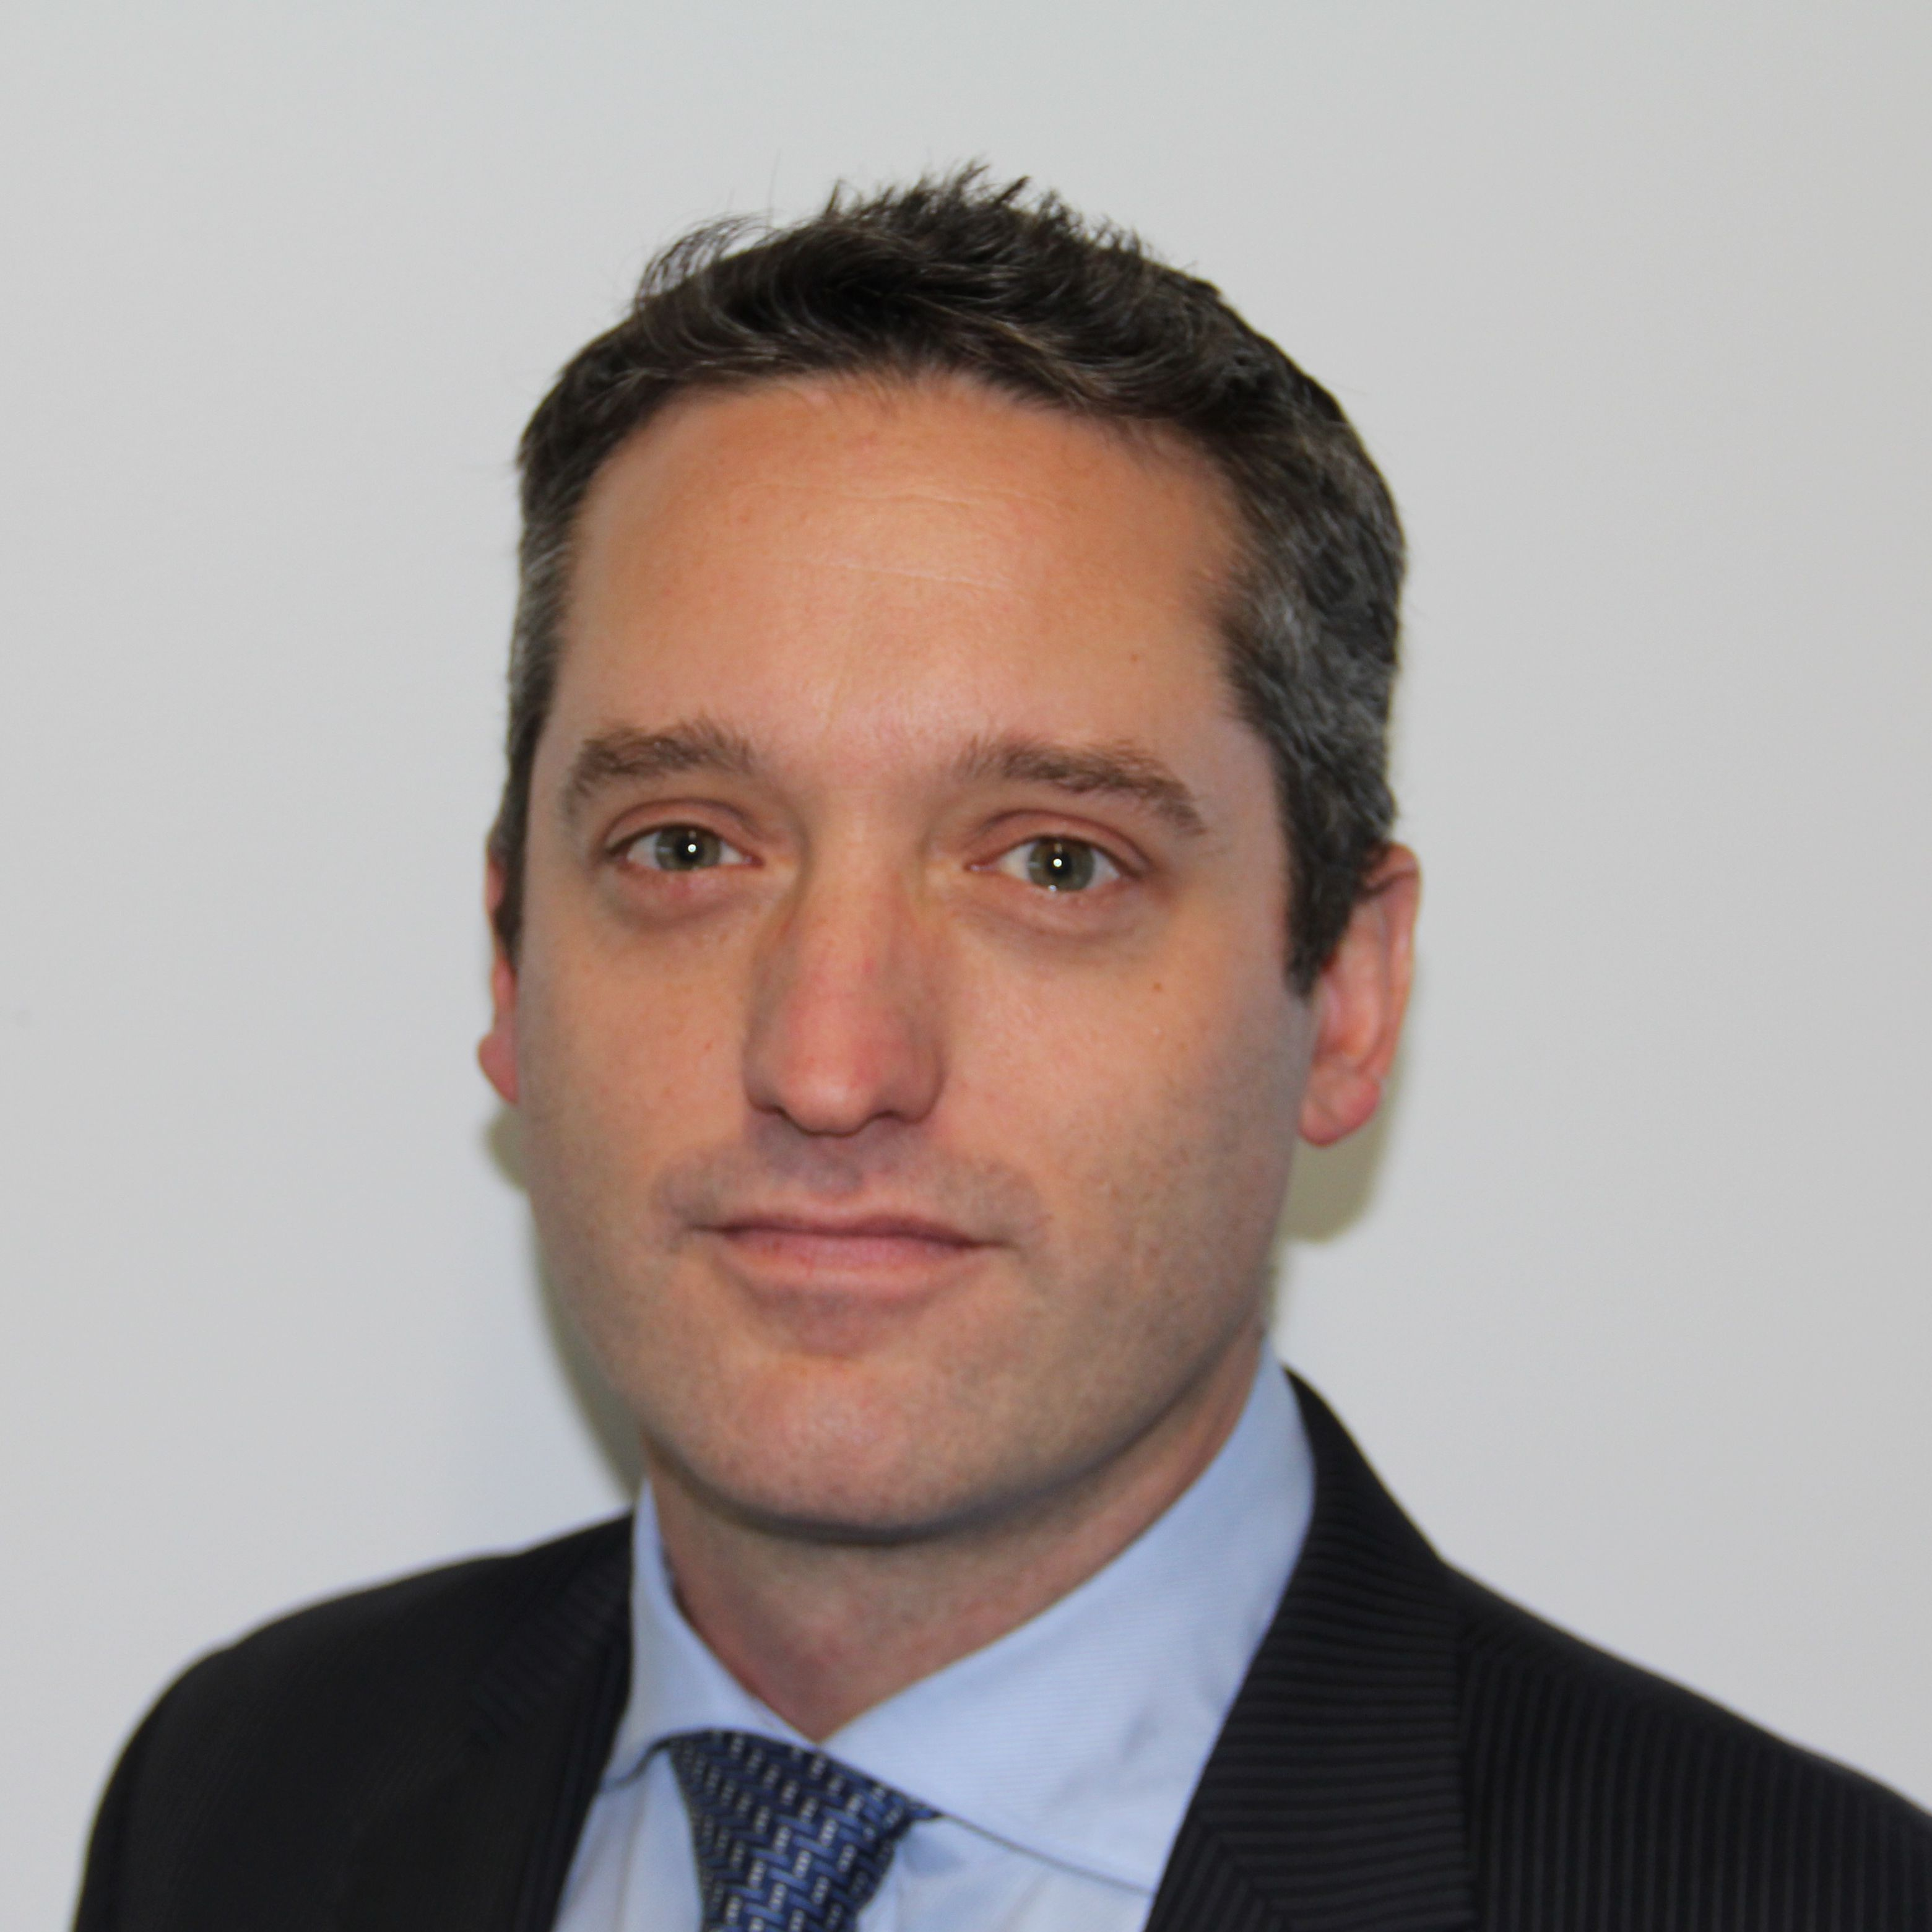 Profile photo of Sean Connelly, Commercial General Manager at MMA Offshore Limited